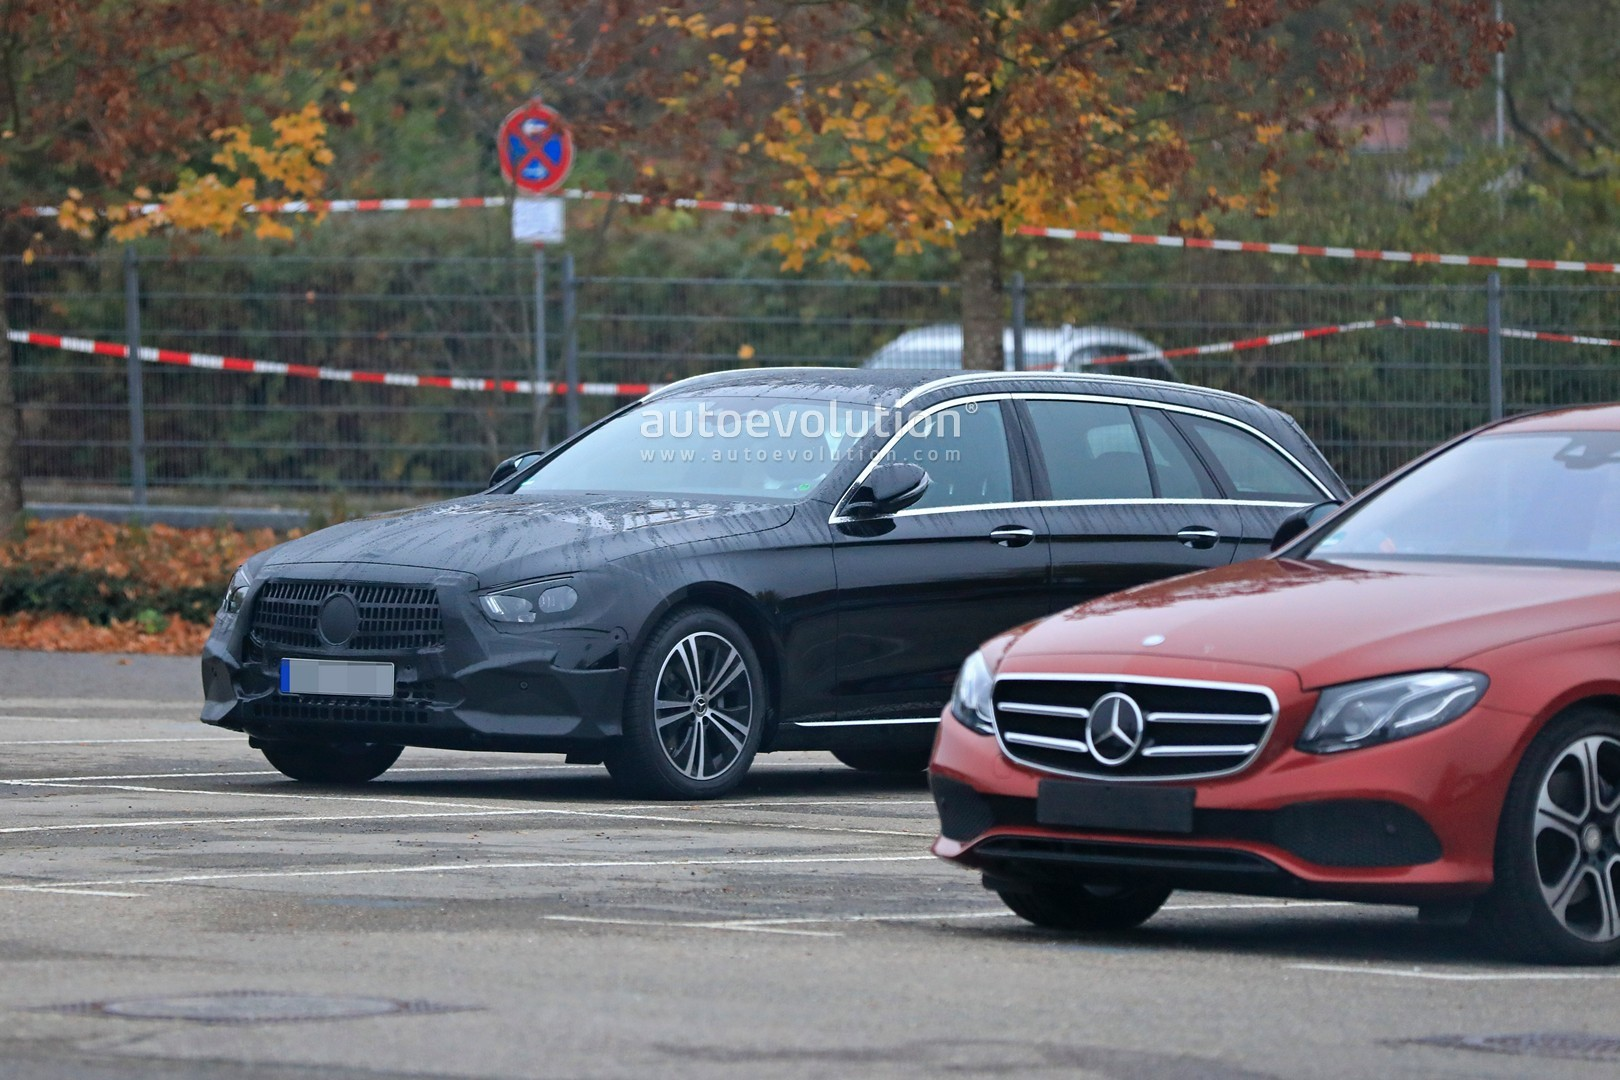 2020 - [Mercedes-Benz] Classe E restylée  2020-mercedes-e-class-spied-is-getting-a-new-face-inspided-by-cls-class_6